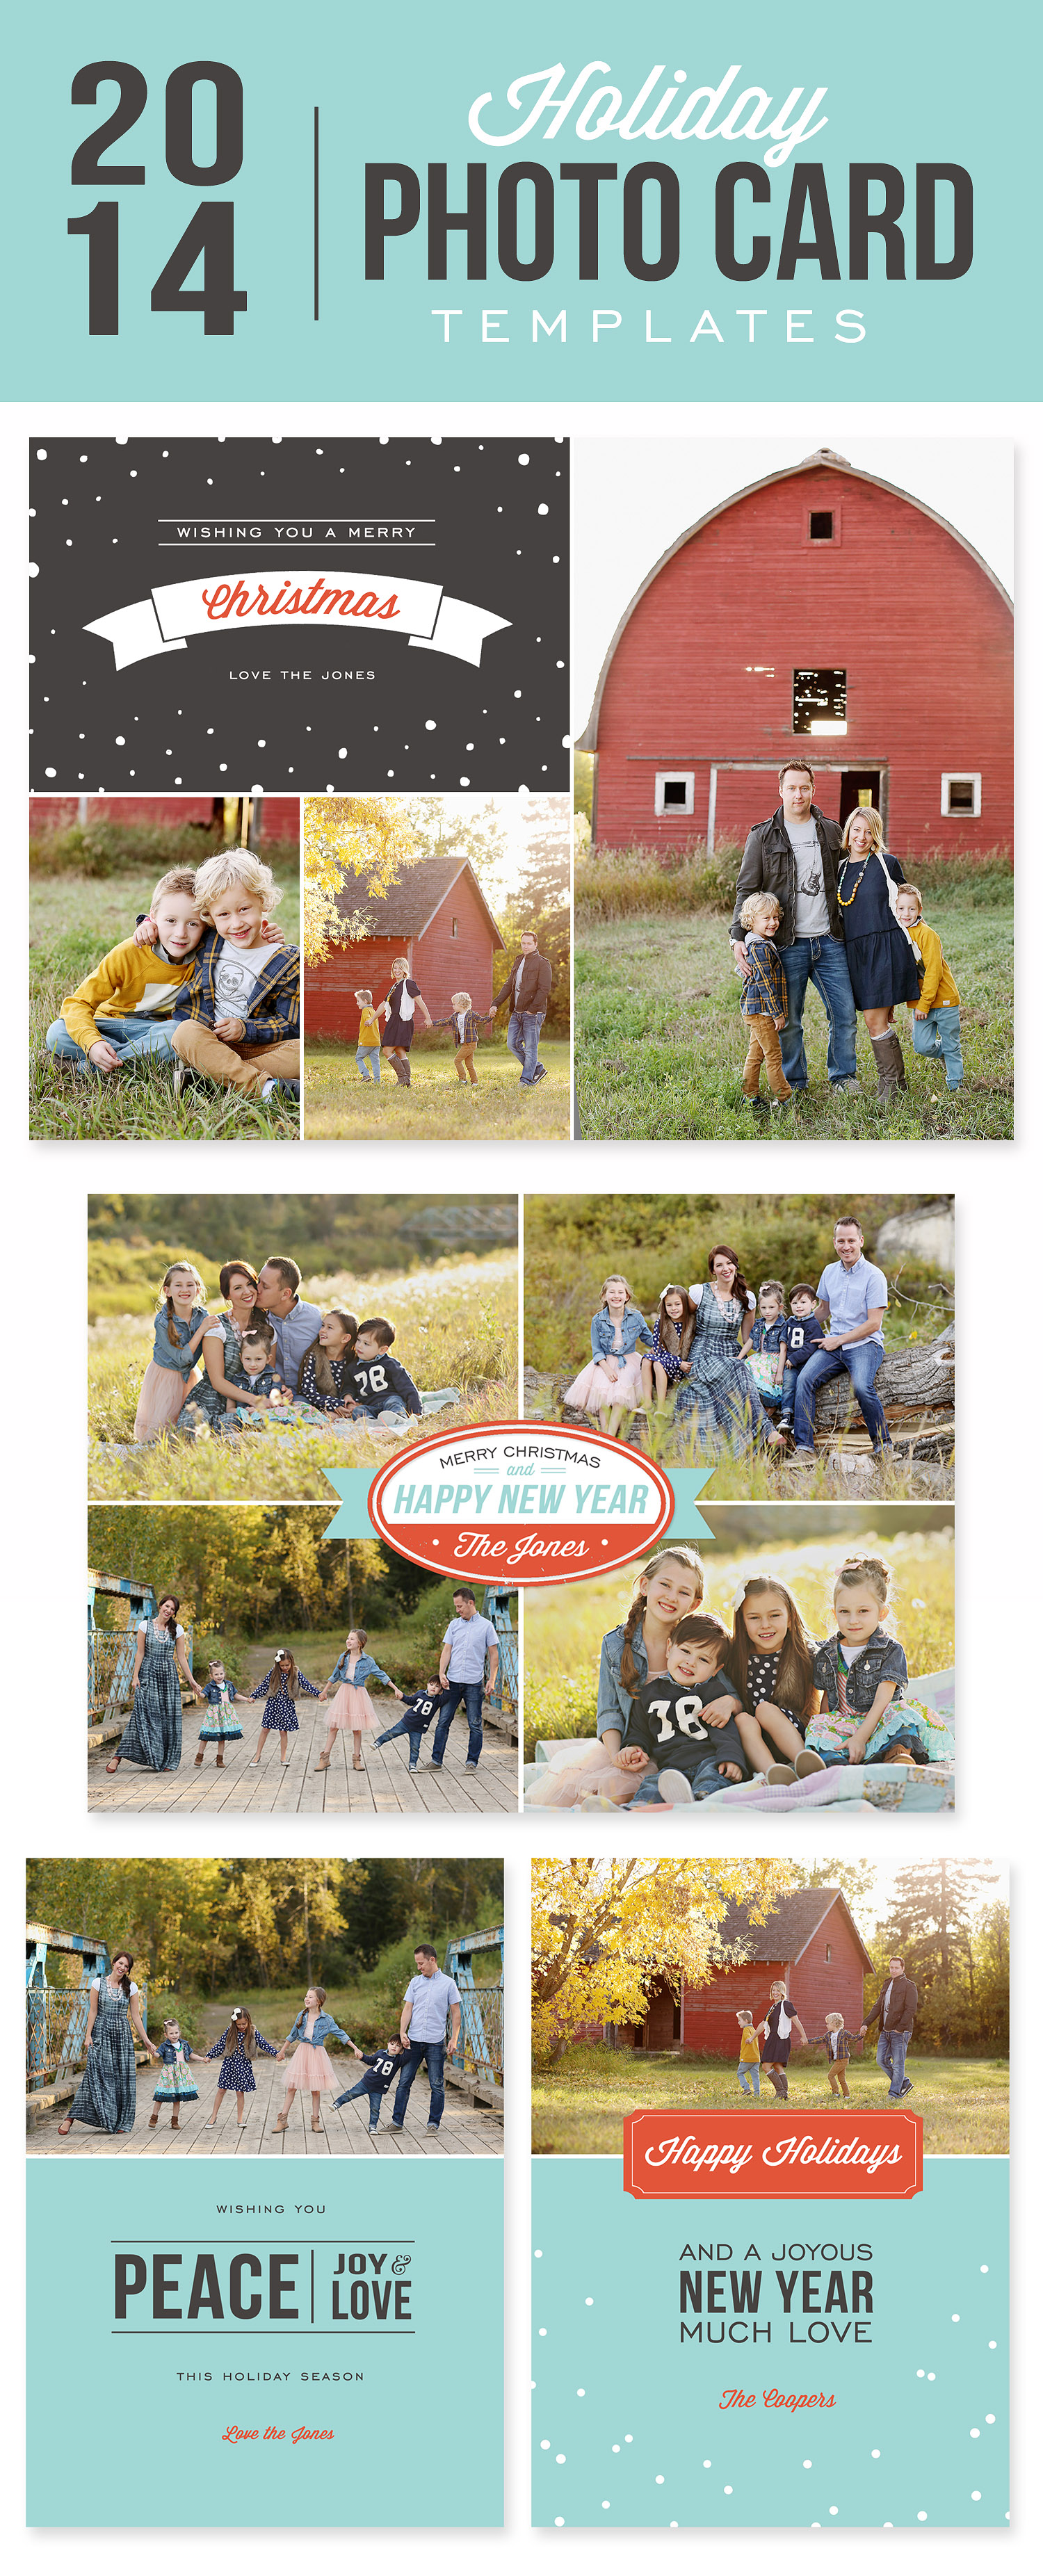 DIY Photo Cards with Digital Templates. Creating your own, personalized holiday cards is easy with these simple to use premade digital templates!